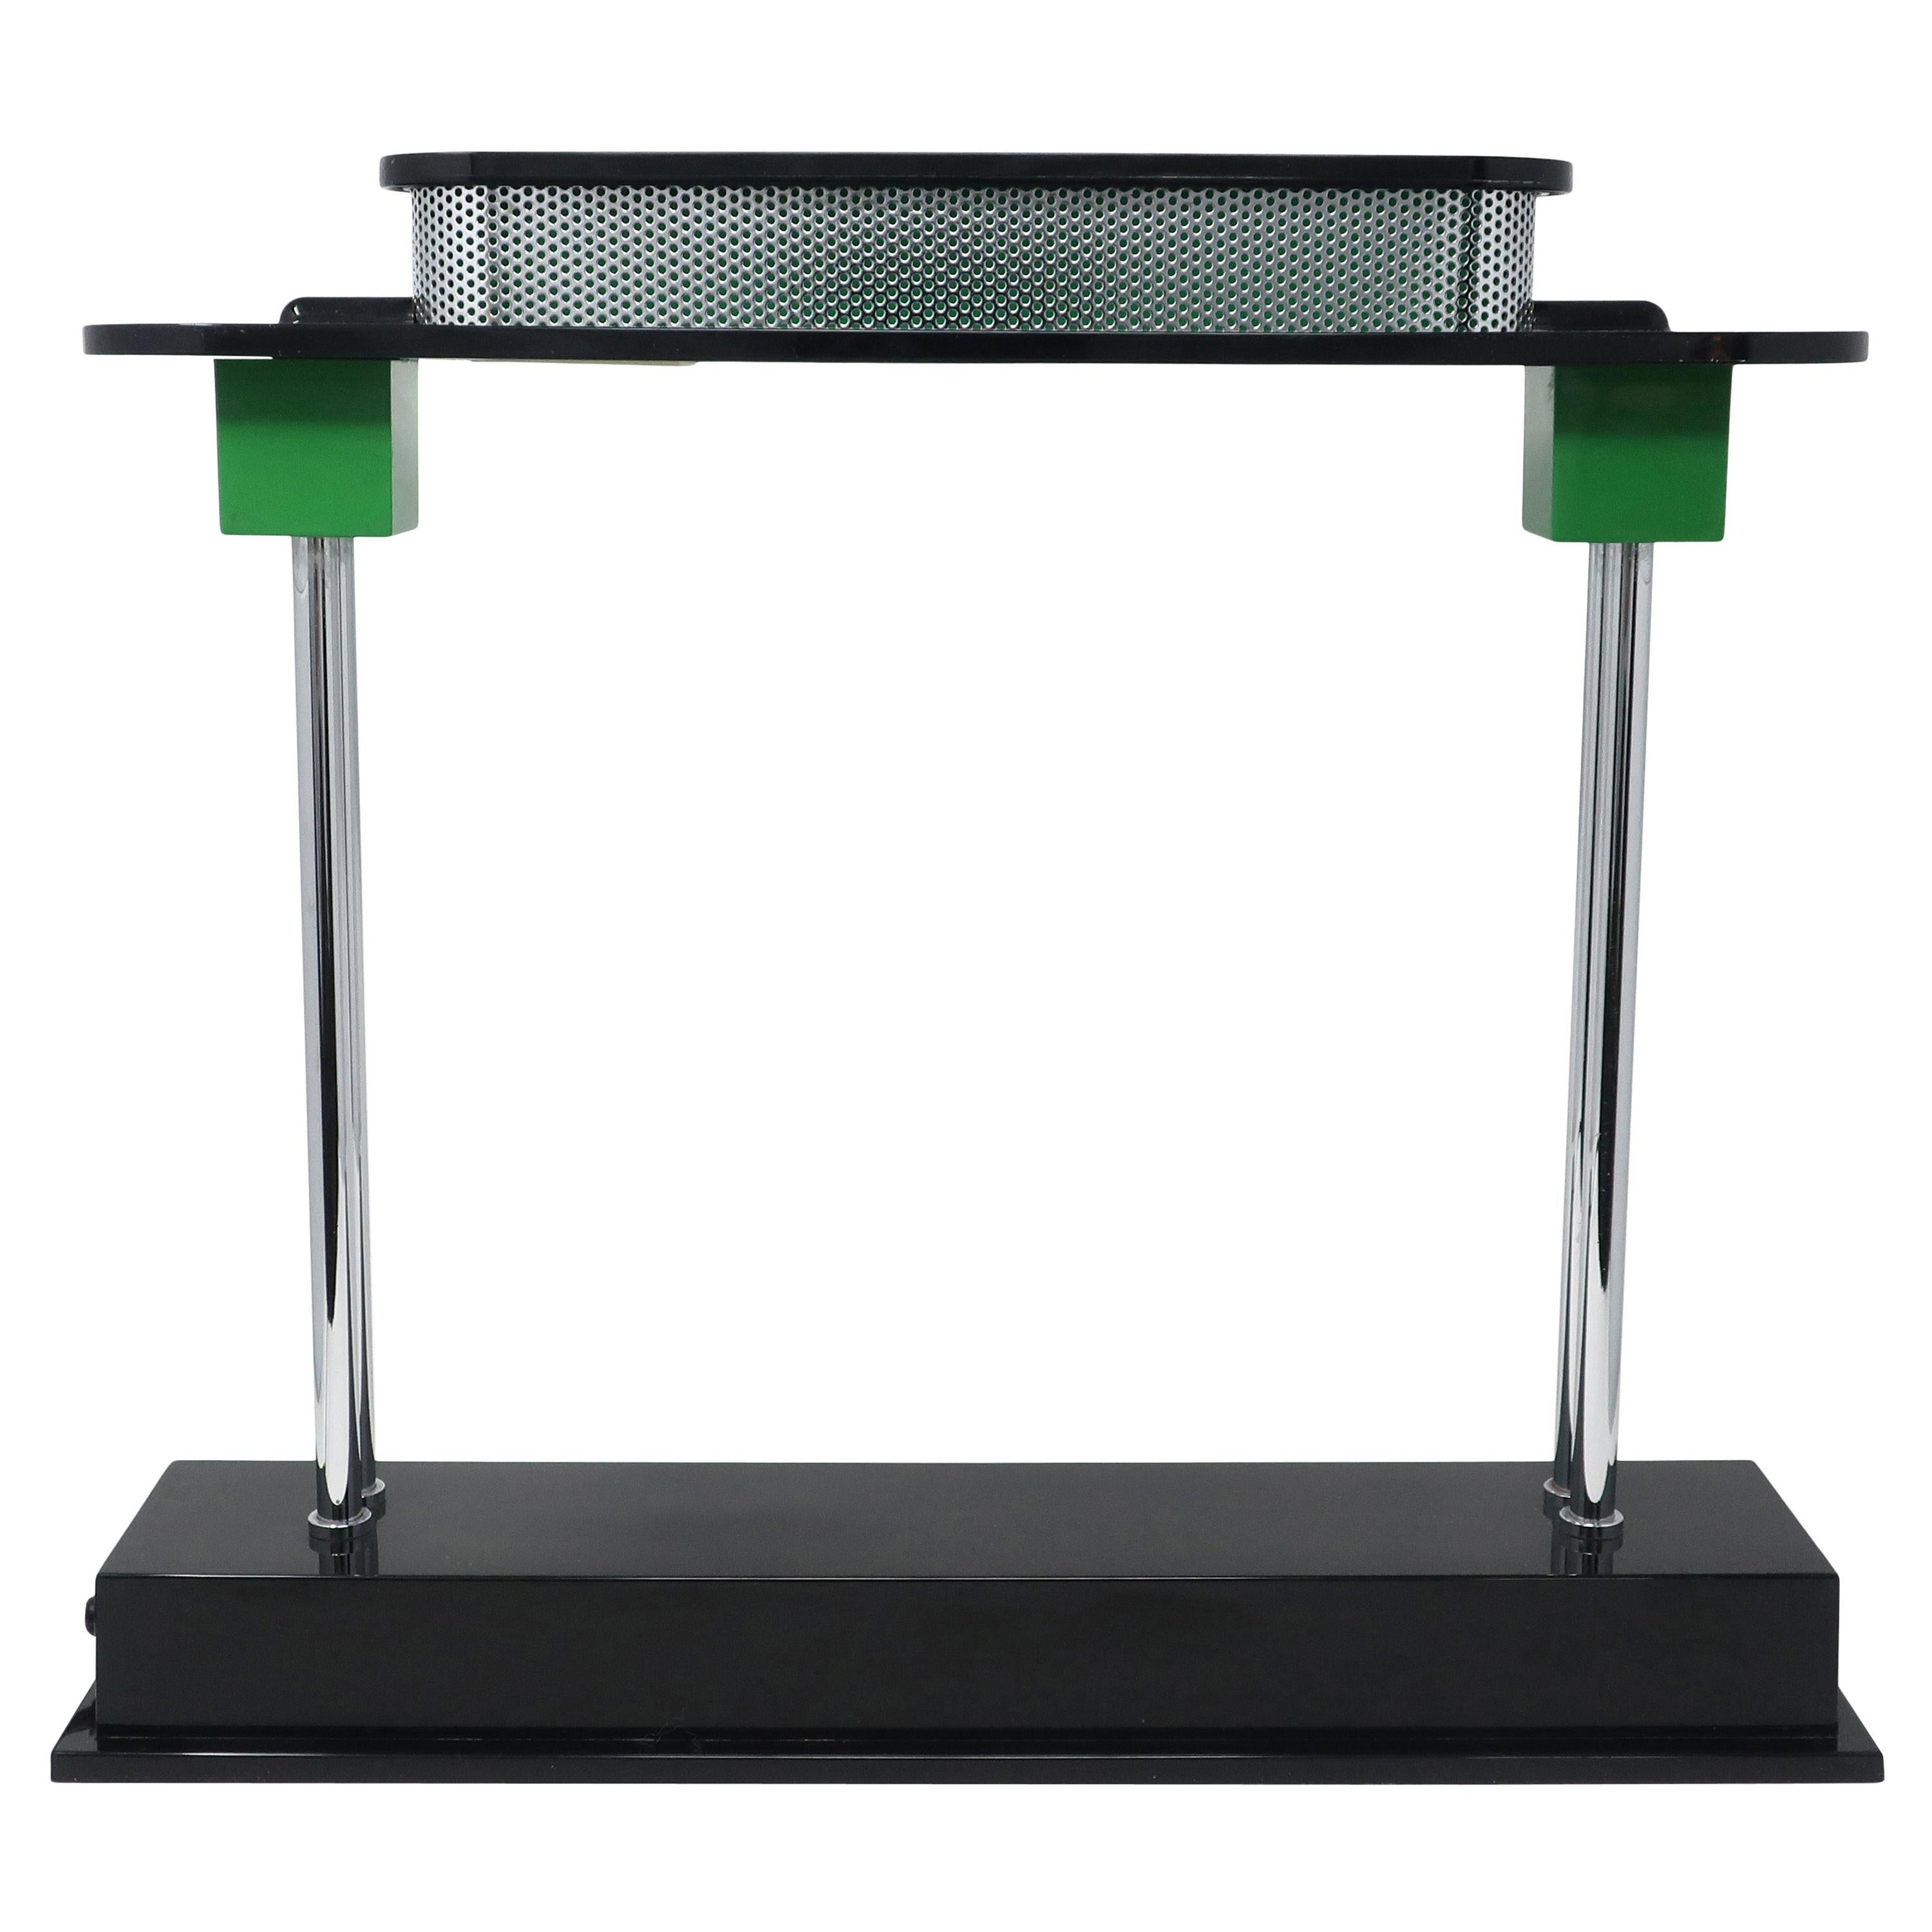 Pausania Table Lamp by Ettore Sottsass for Artemide